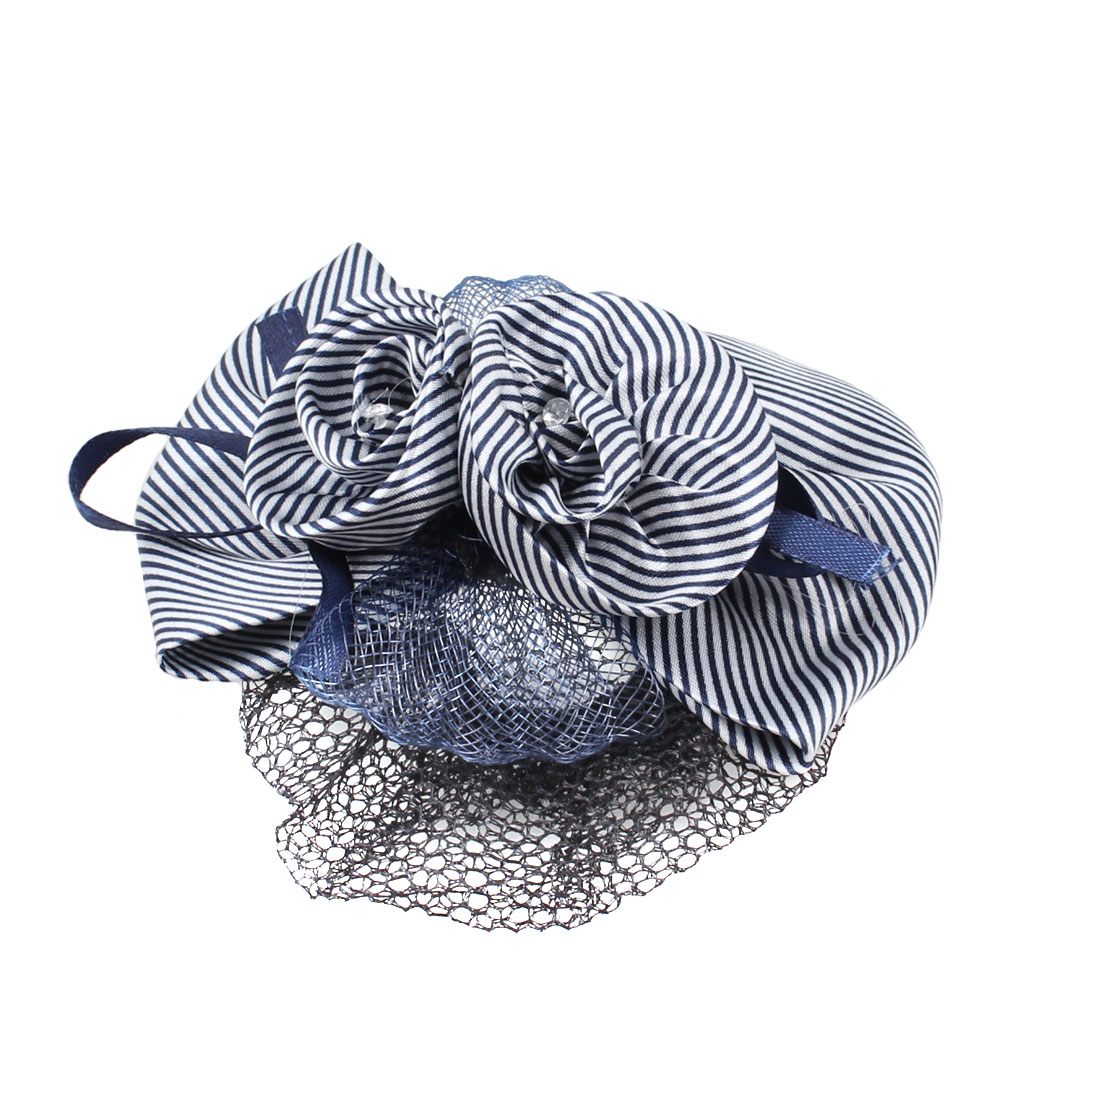 Blue White Striped Flower Bowknot Snood Net Barrette Hair Clip for Ladies